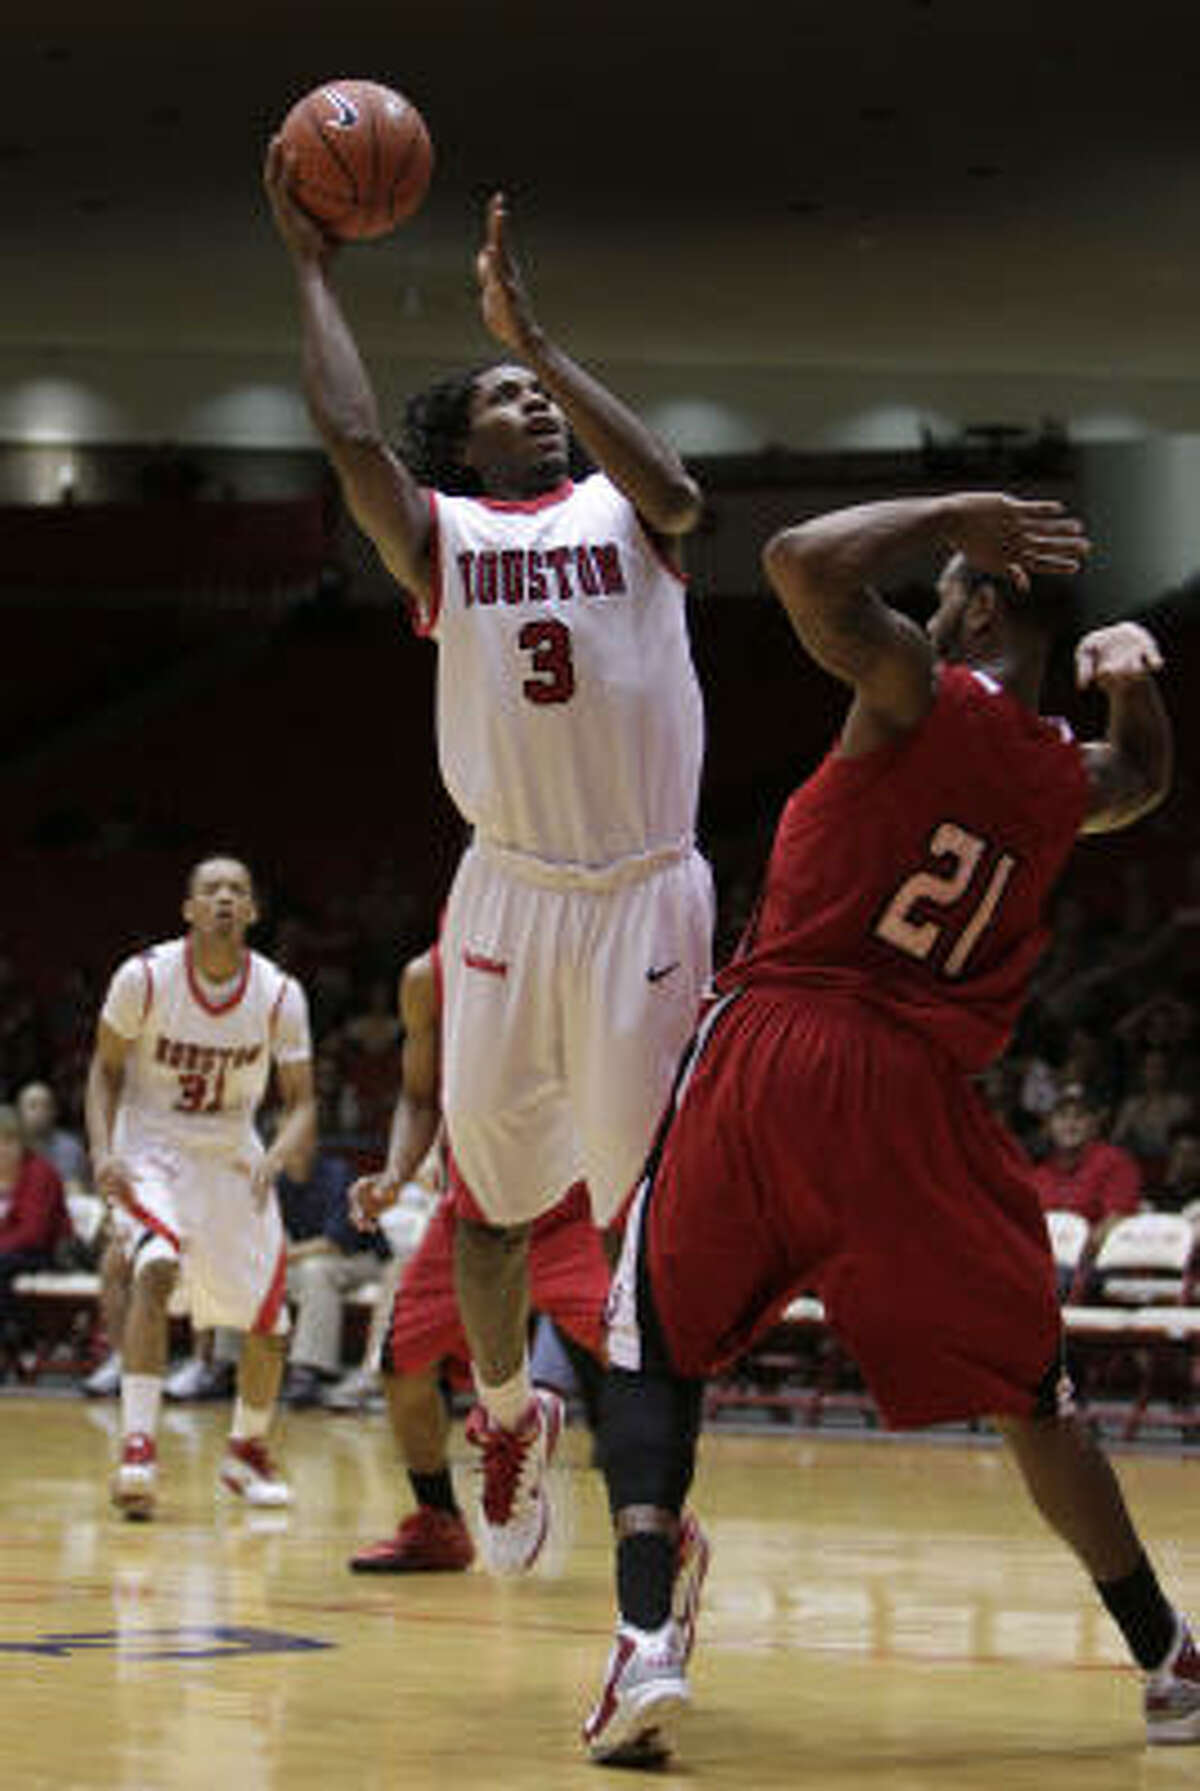 UH's Maurice McNeil puts up a shot in the first half.